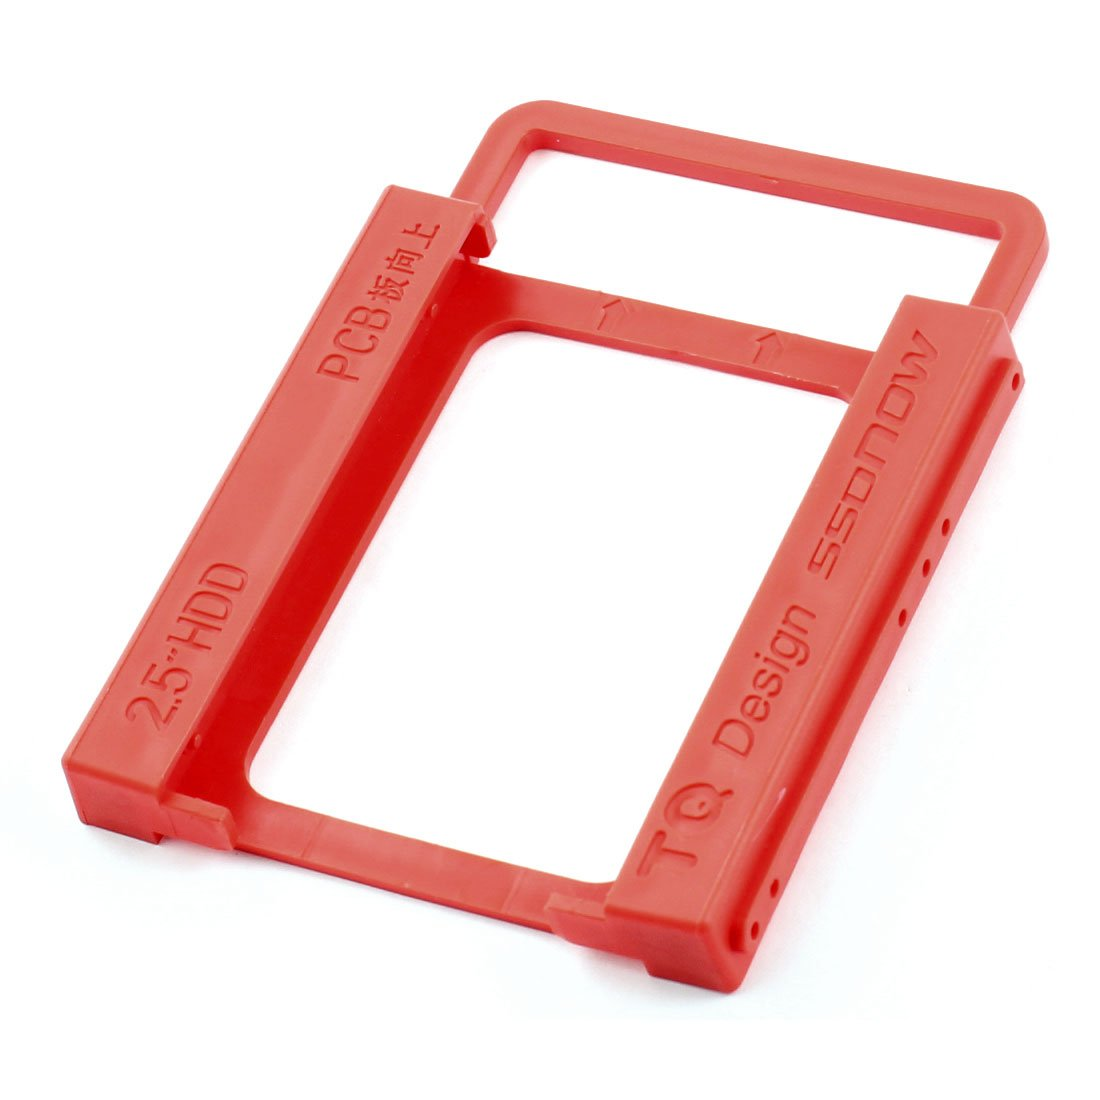 2.5'' to 3.5'' SSD HDD Hard Disk Drive Mounting Bracket Adapter Holder